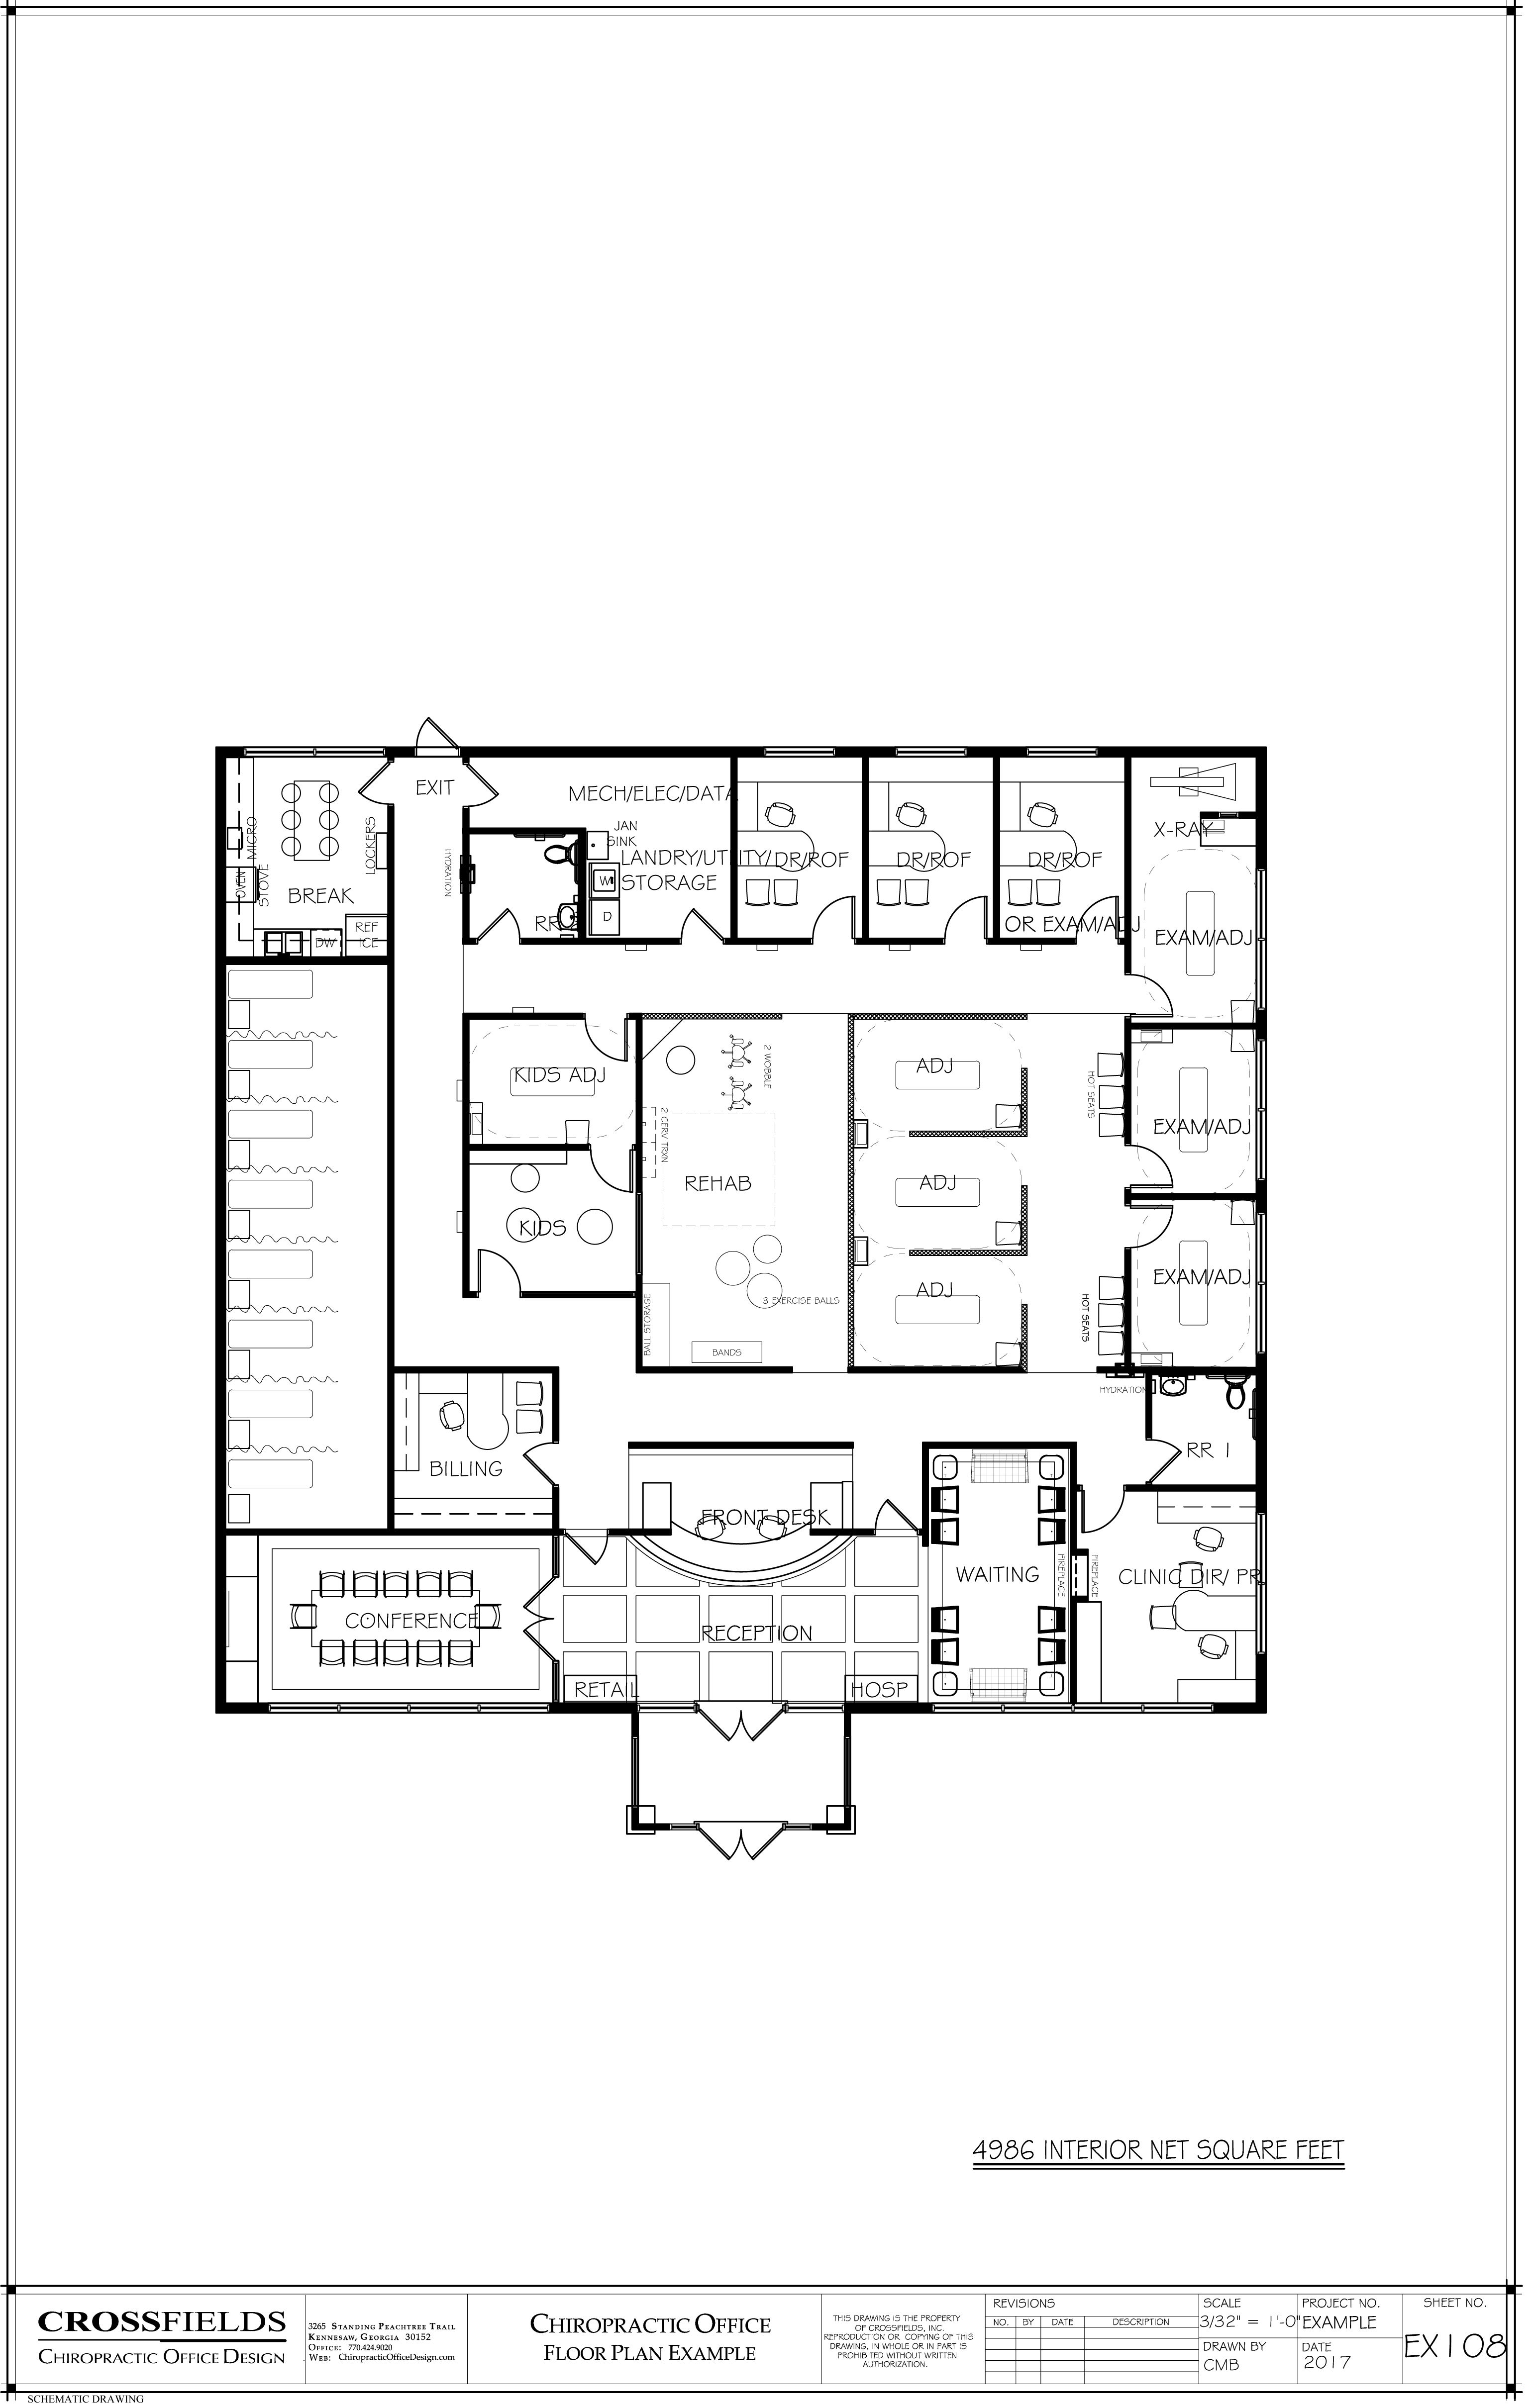 chiropractic office design for chiropractic office. Chiropractic Office Floor Plan Semi-Open And Closed Adjusting Rehab Kids Area Doctor XRay Clinic Director IST Therapy 4986 Interior Net Sq Ft Design For I